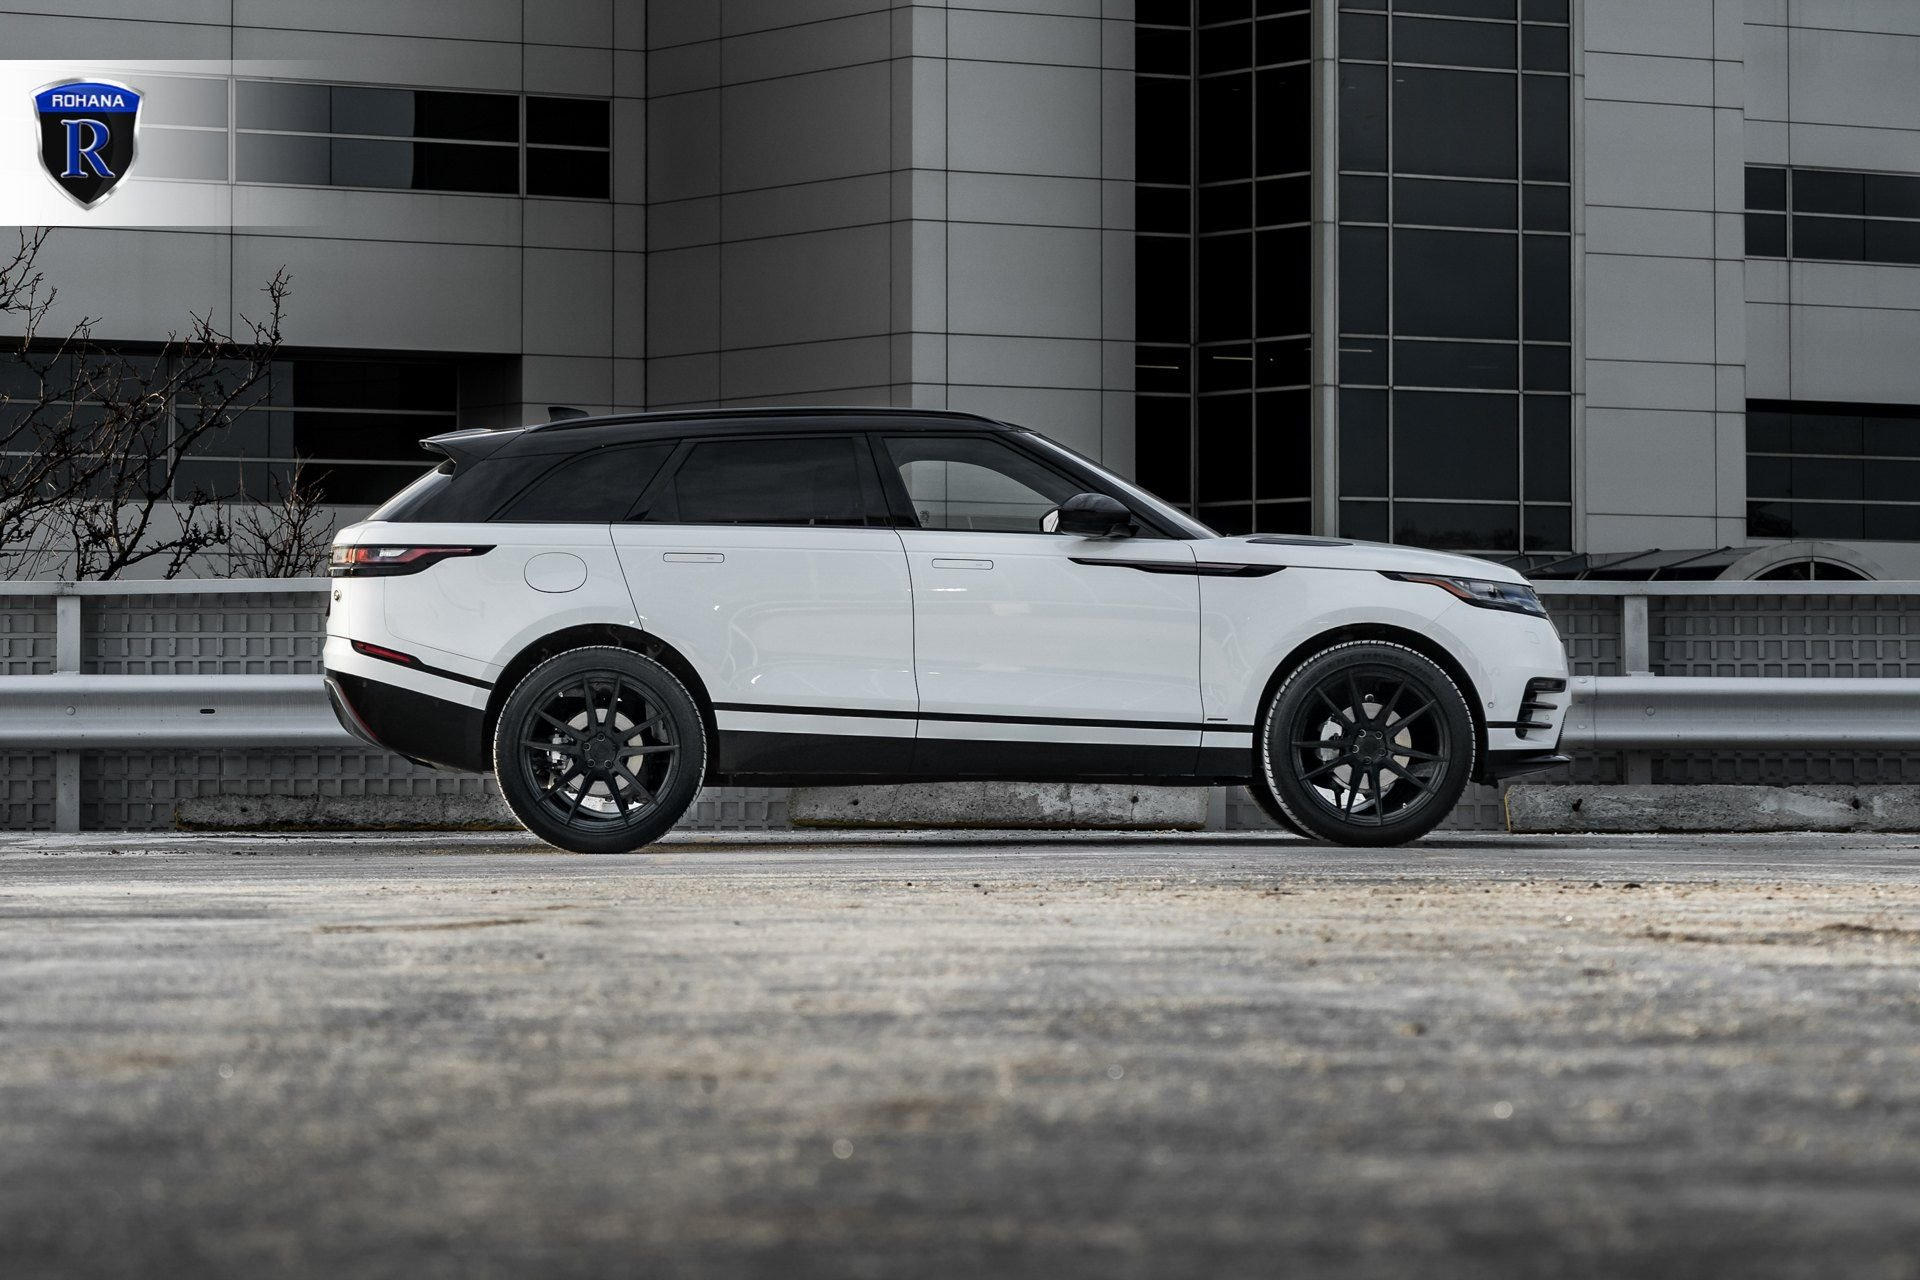 New 2019 Land Rover-Range Rover Velar P380 S Range Rover Velar P380 S for sale $63,300 at M and V Leasing in Brooklyn NY 11223 1